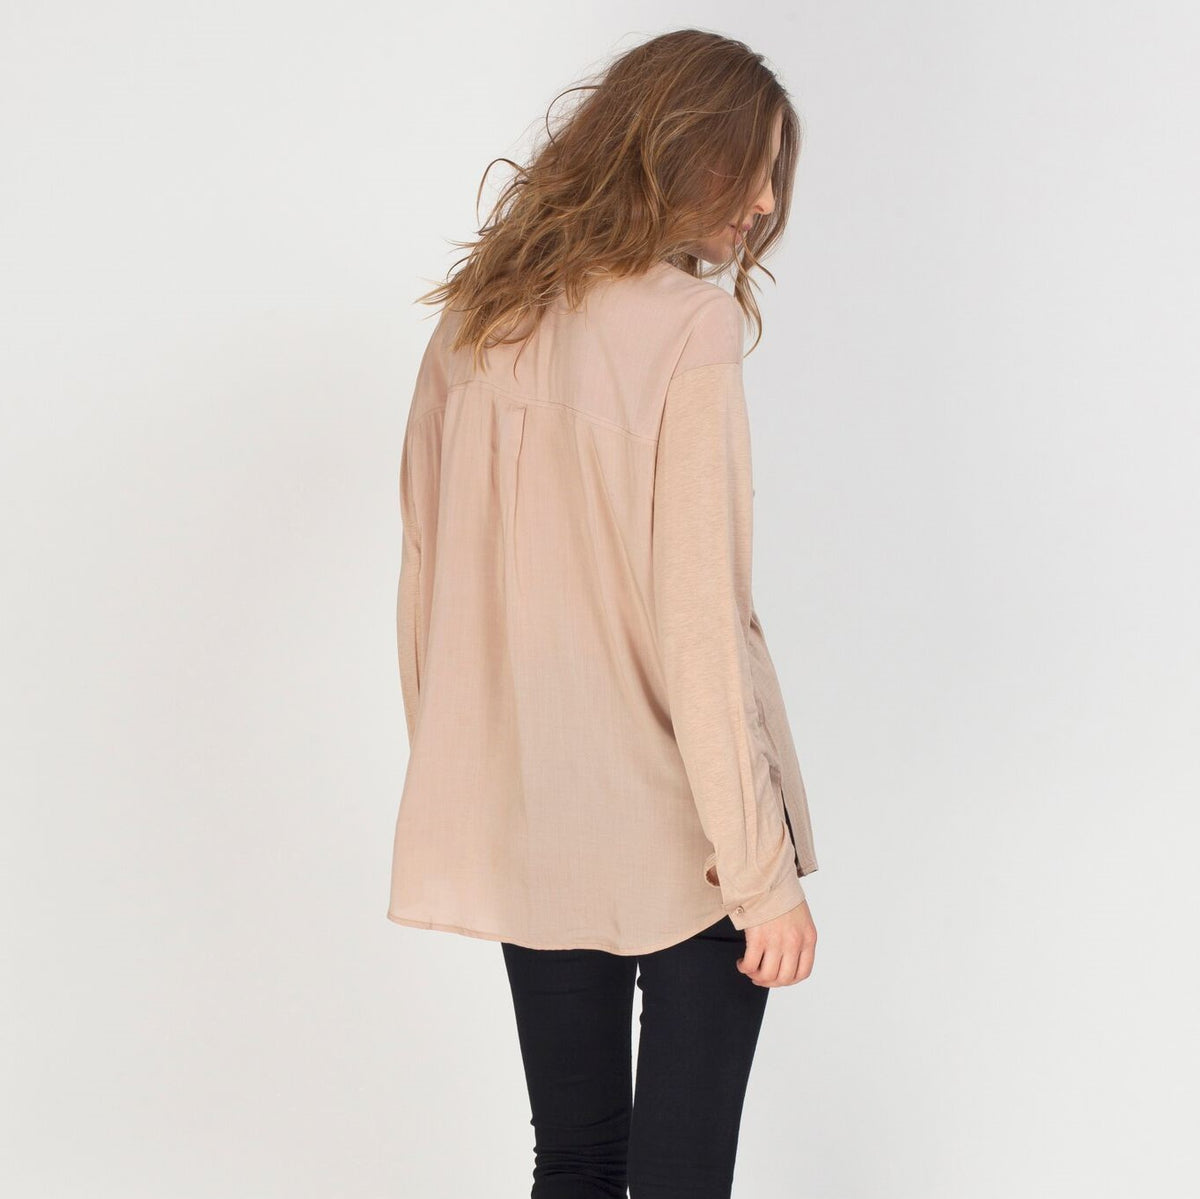 GENTLE FAWN Arlow Top